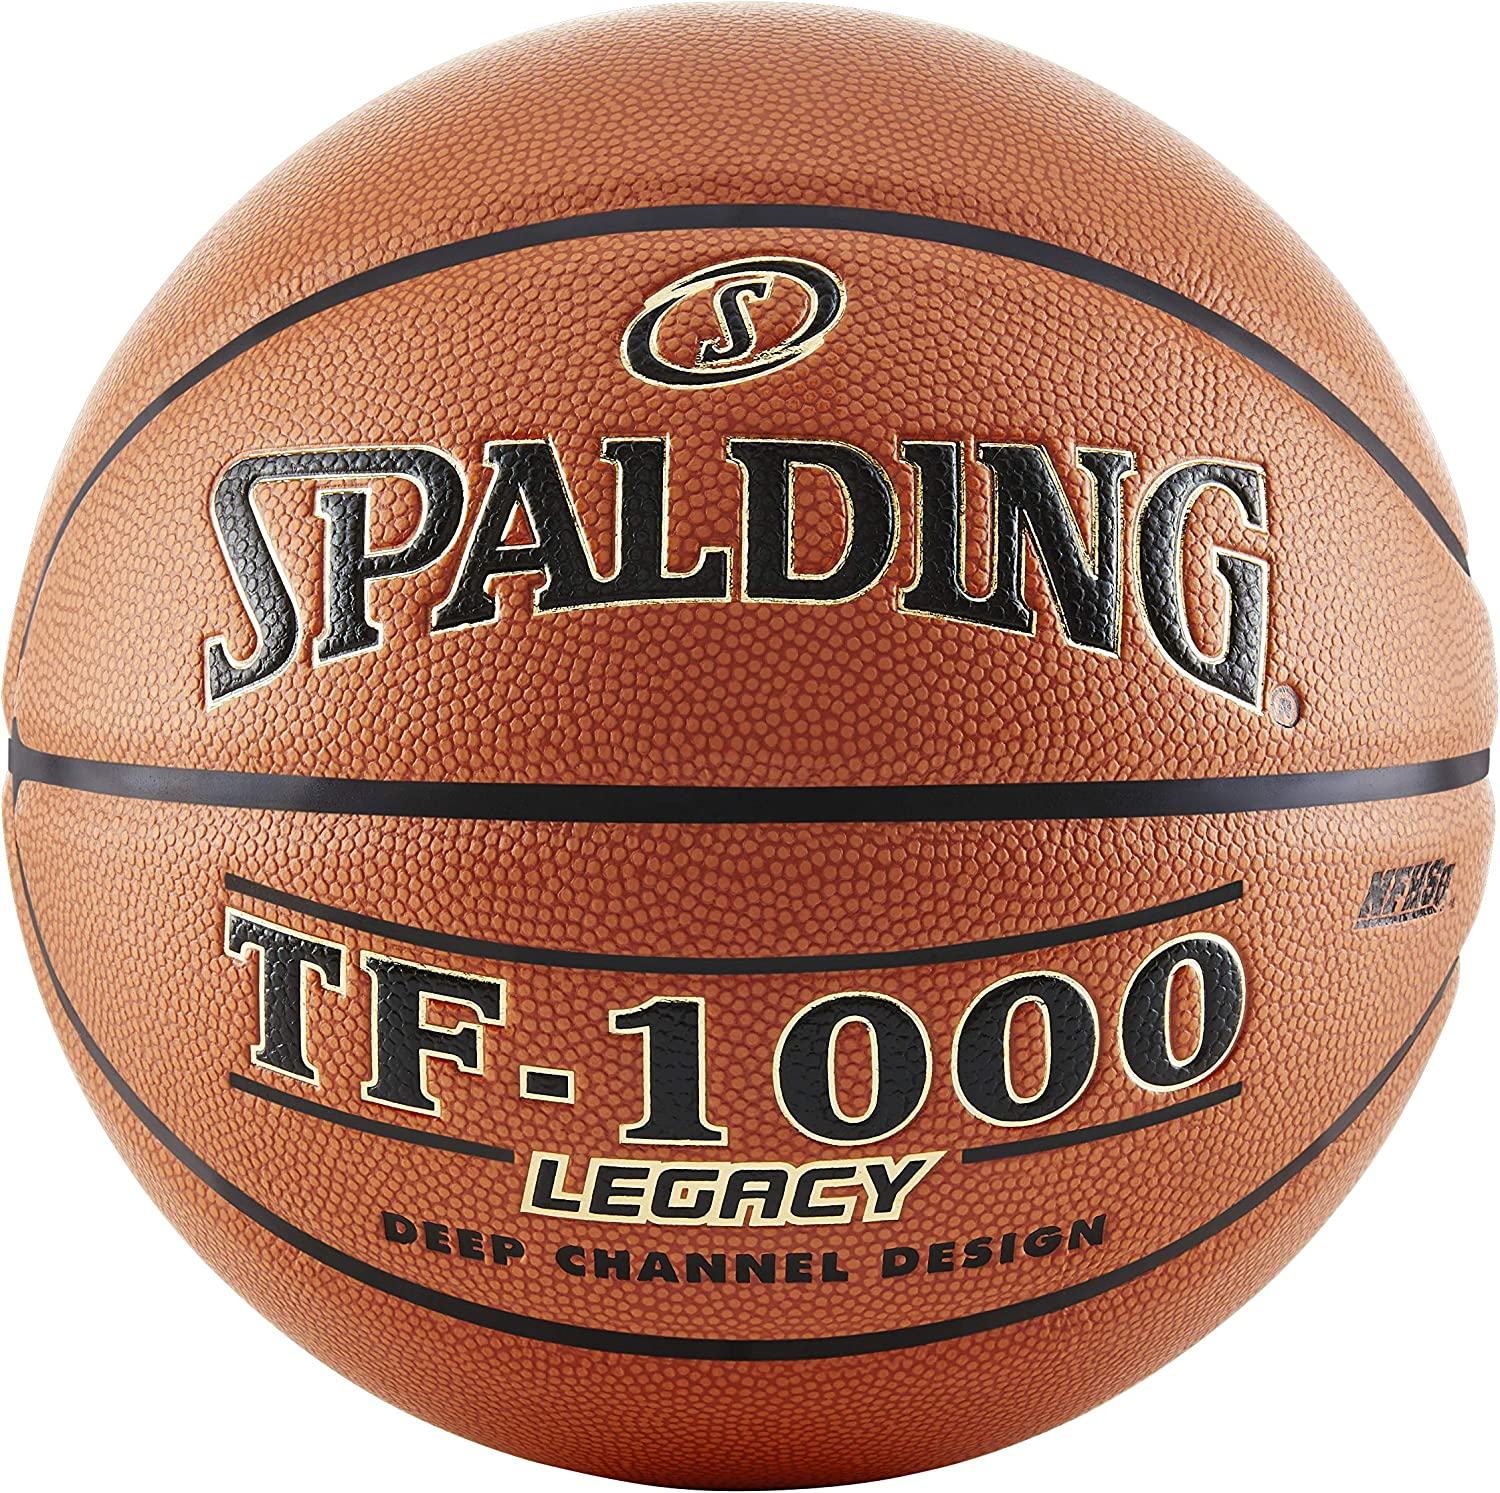 Spalding Legacy TF-1000 Game Basketball Ranking Selling and selling TOP6 Indoor